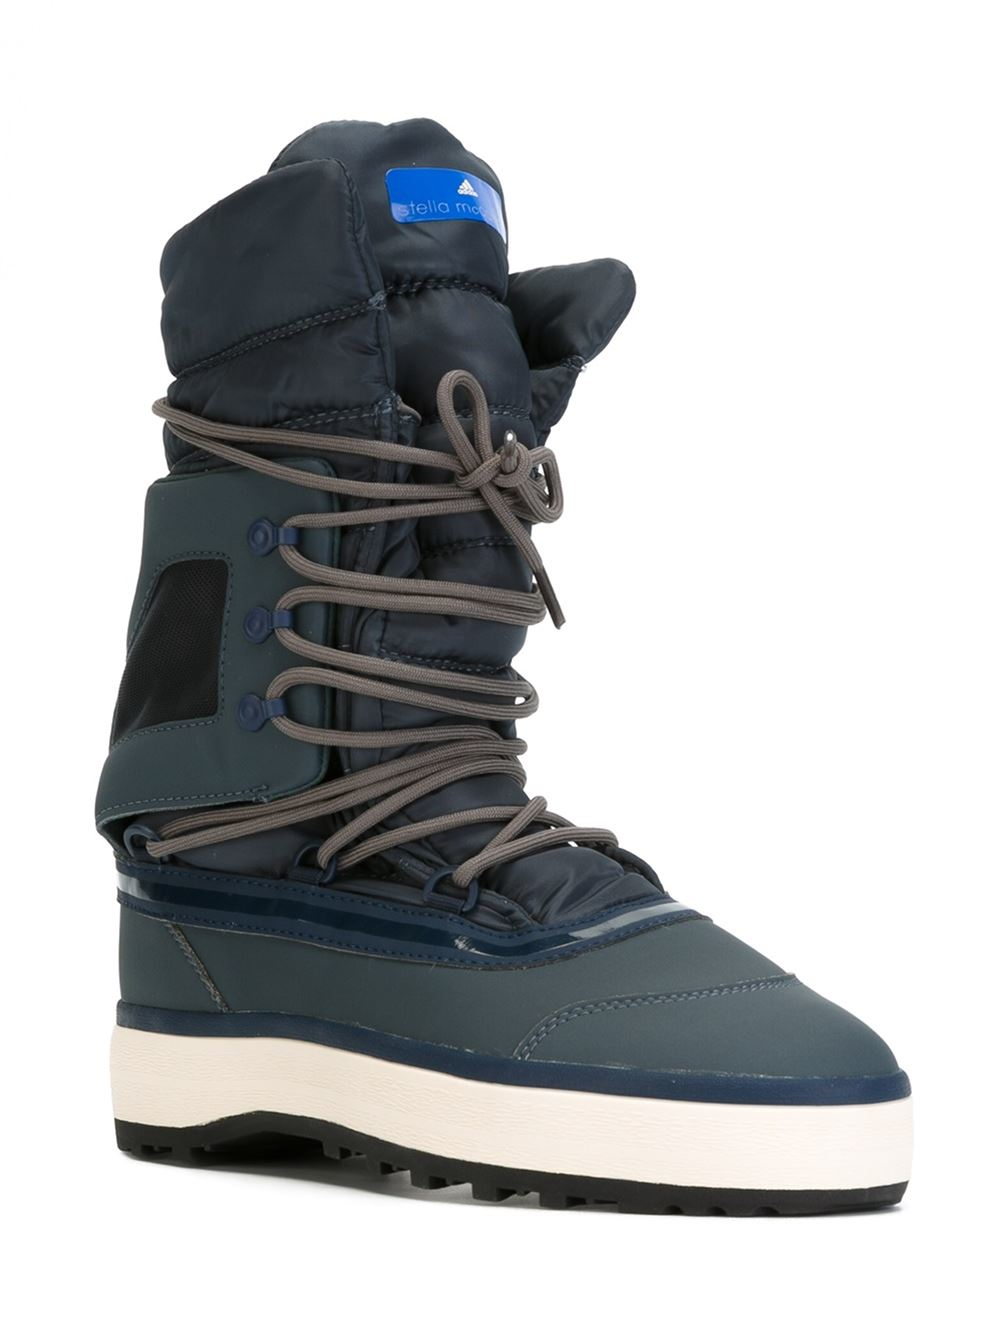 Lyst - Adidas by stella mccartney Lace-up After Ski Boots in Brown : adidas quilted boots - Adamdwight.com